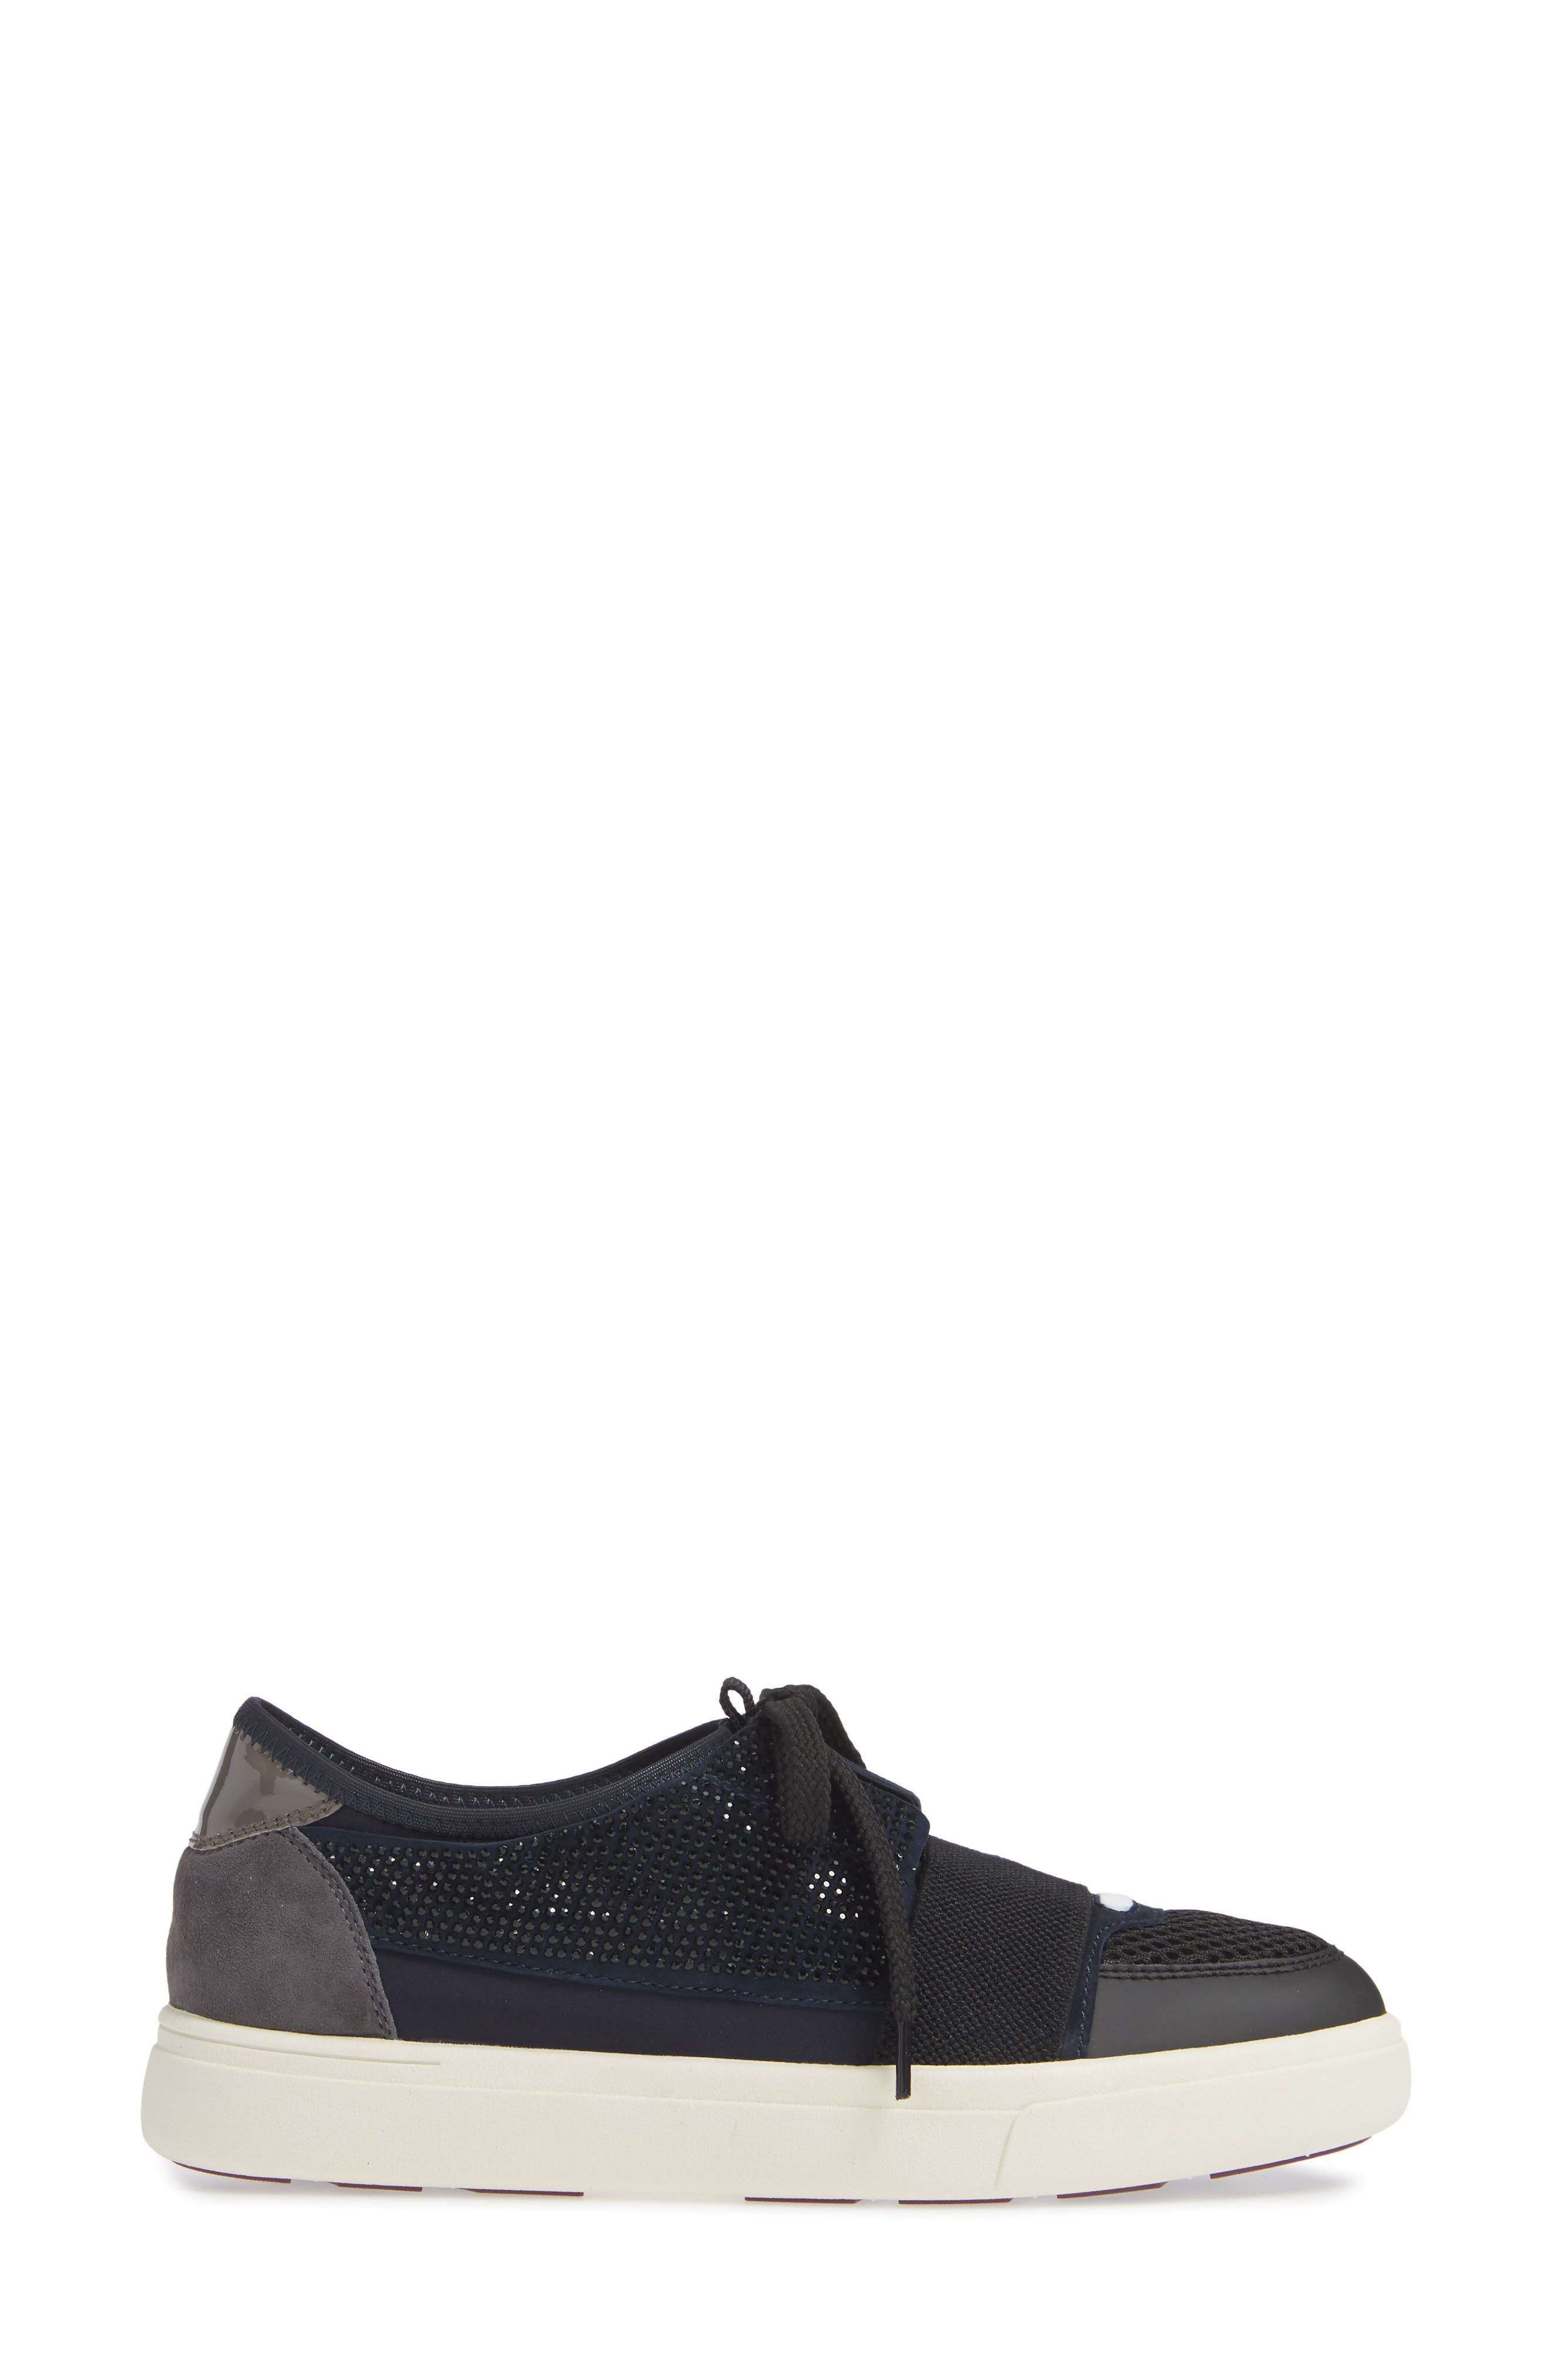 Onella Lace-Up Sneaker,                             Alternate thumbnail 3, color,                             BLACK/ NAVY/ GREY MULTI